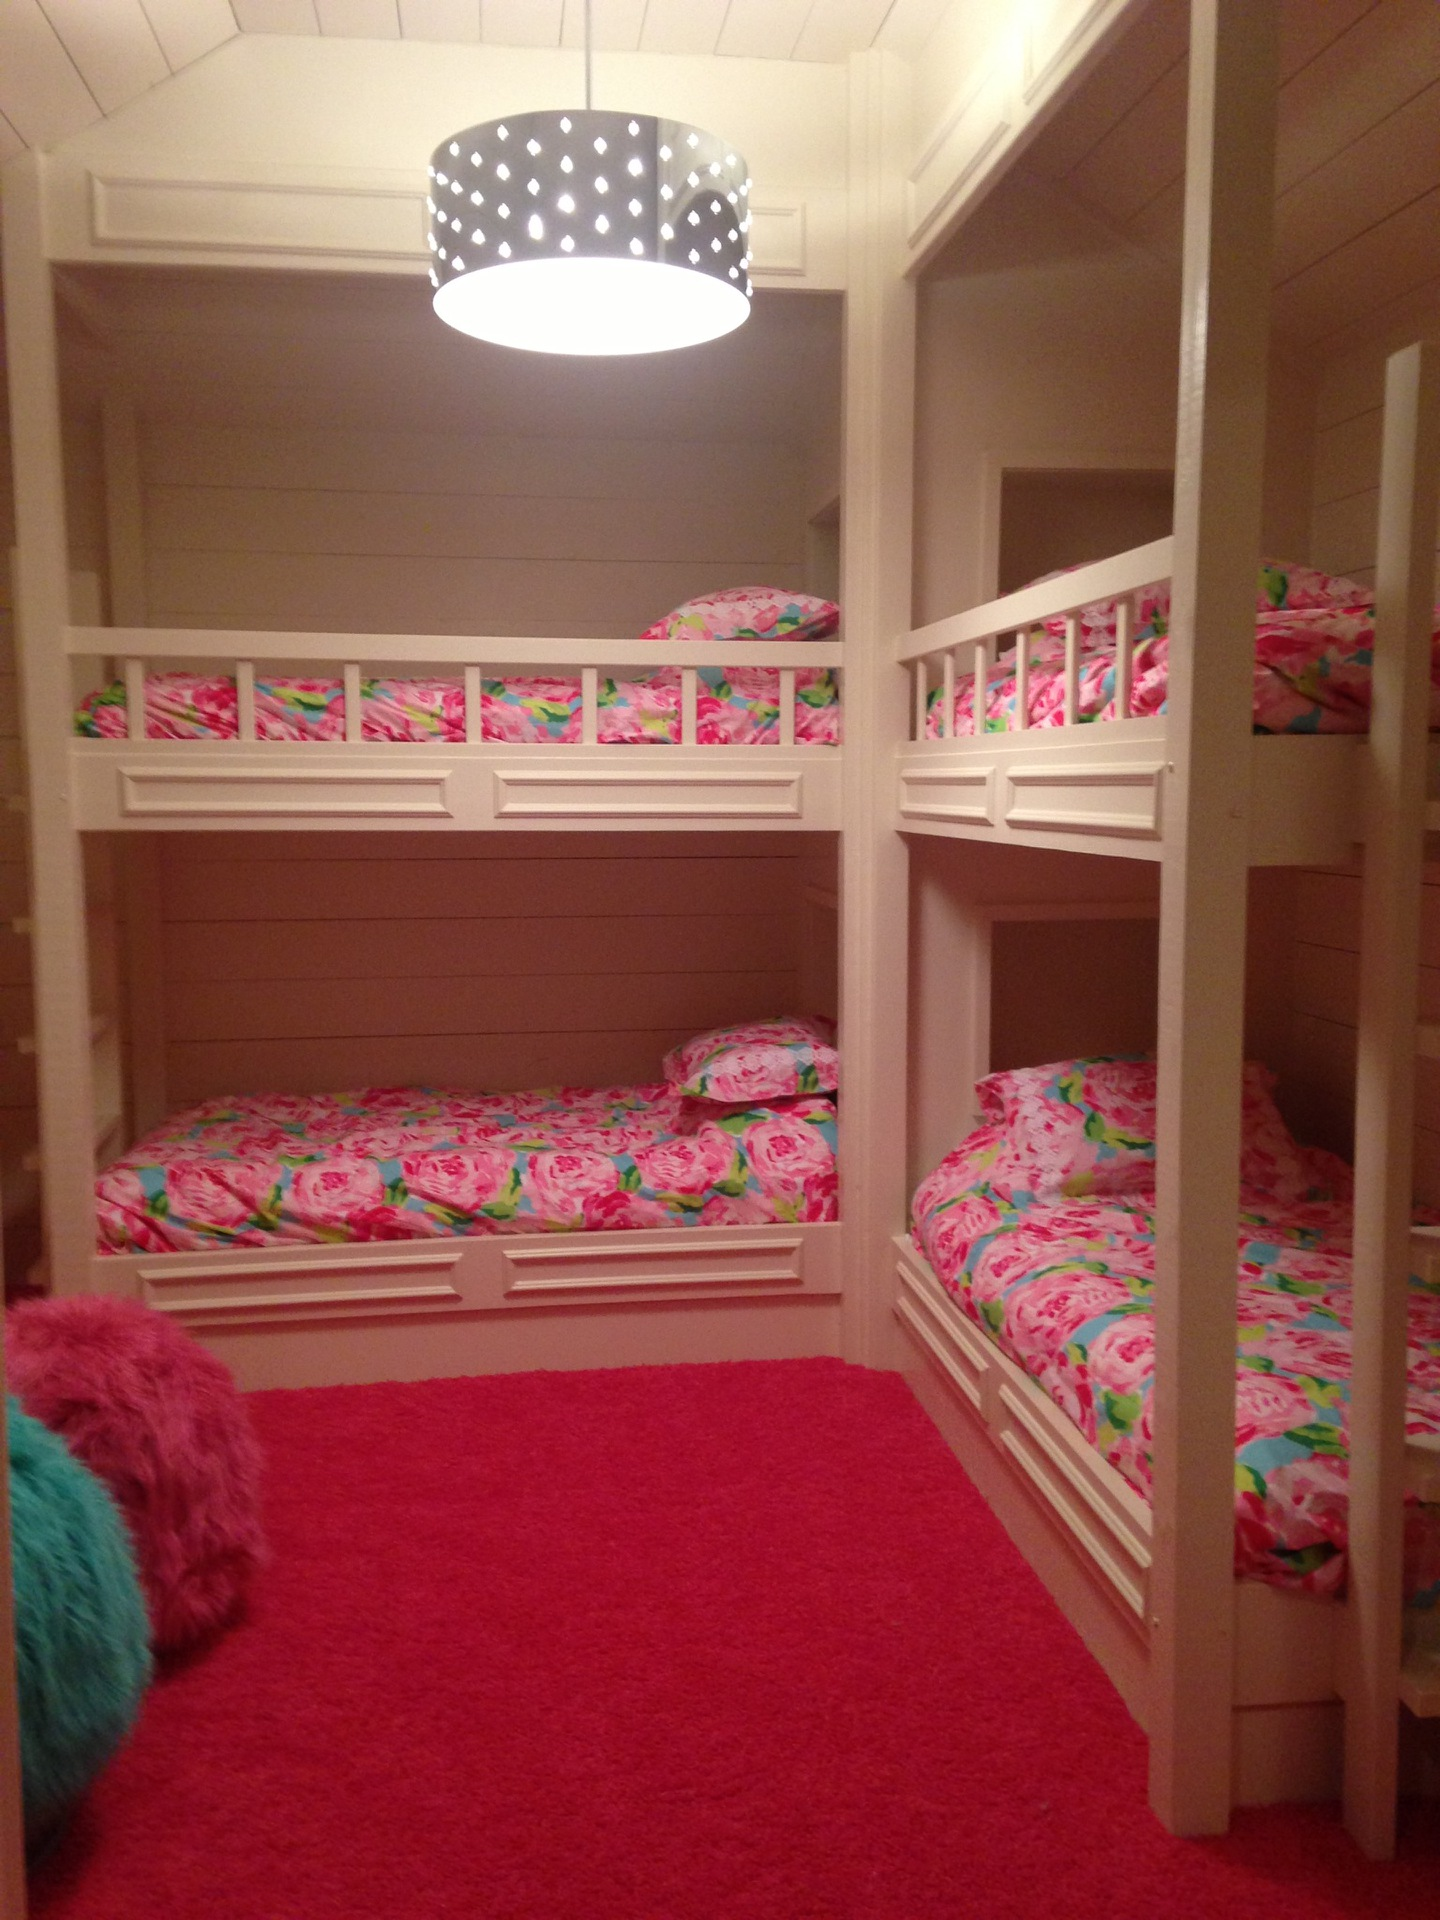 Built in bunk beds real vinings buckhead Bunk bed boys room